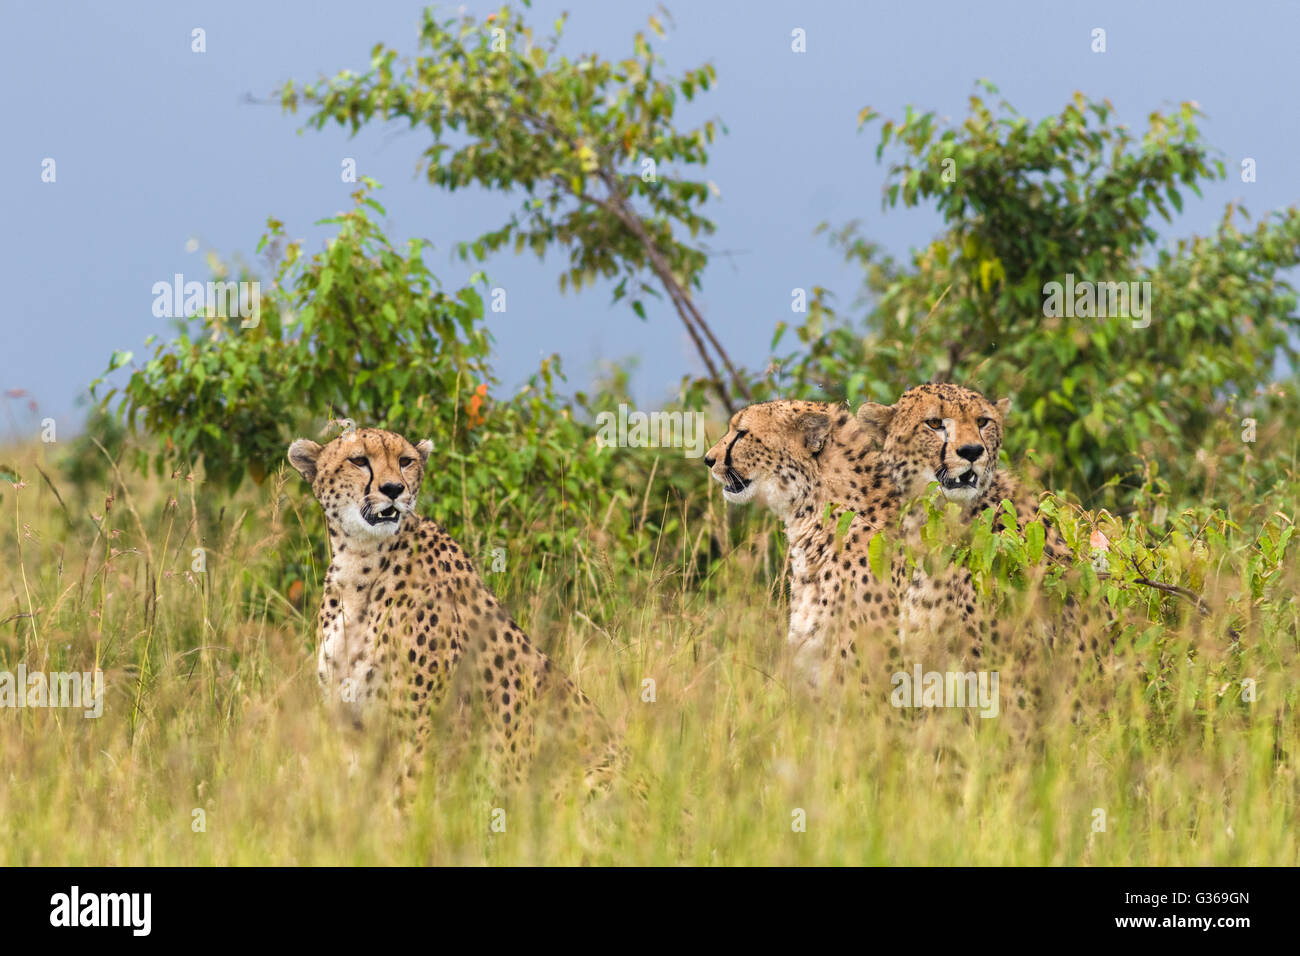 Three cheetahs sitting together in grass looking around like they are hunting, two looking towards camera, Masai - Stock Image